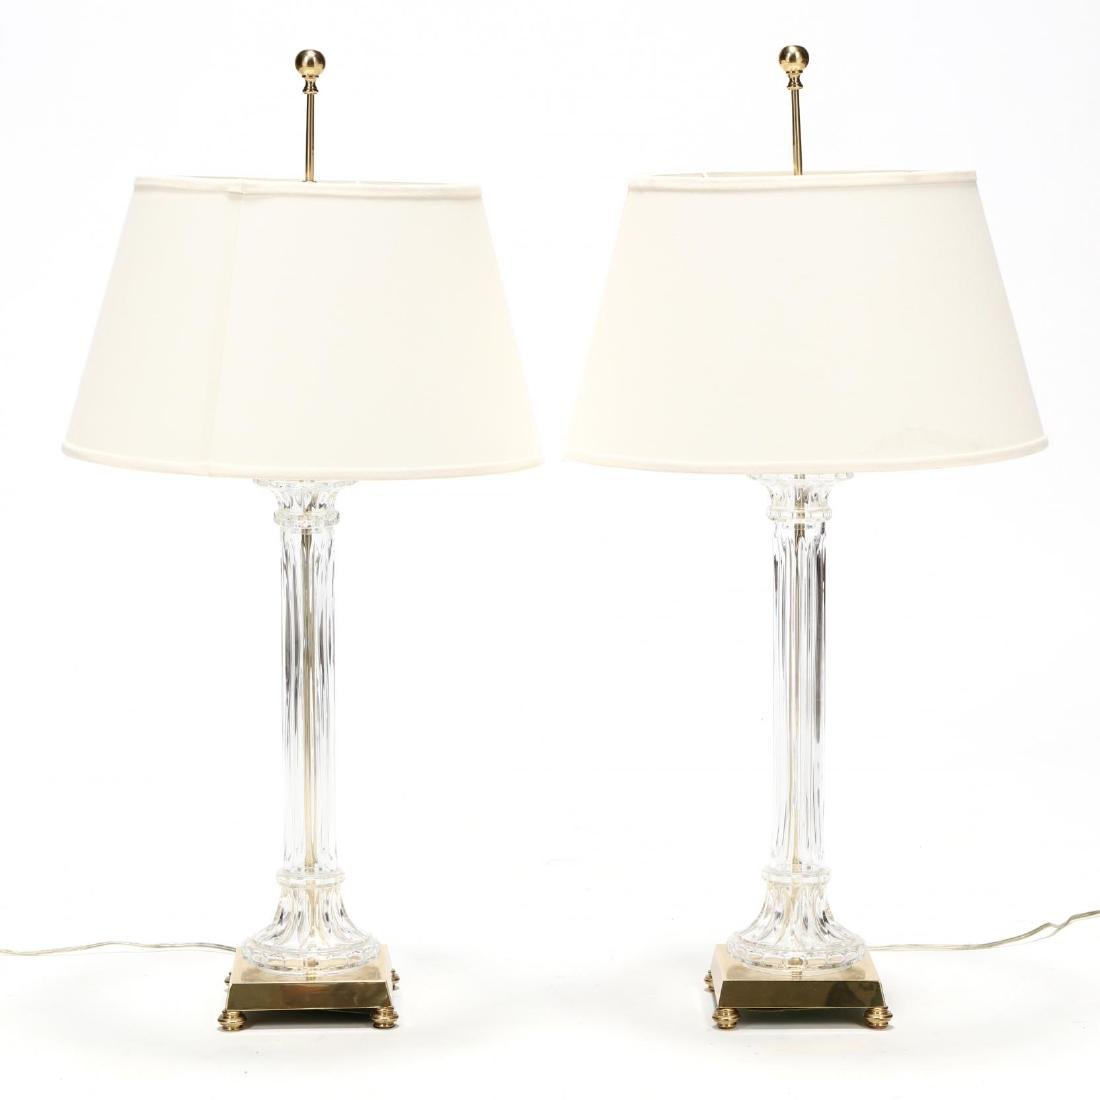 Pair of Glass and Brass Column Table Lamps